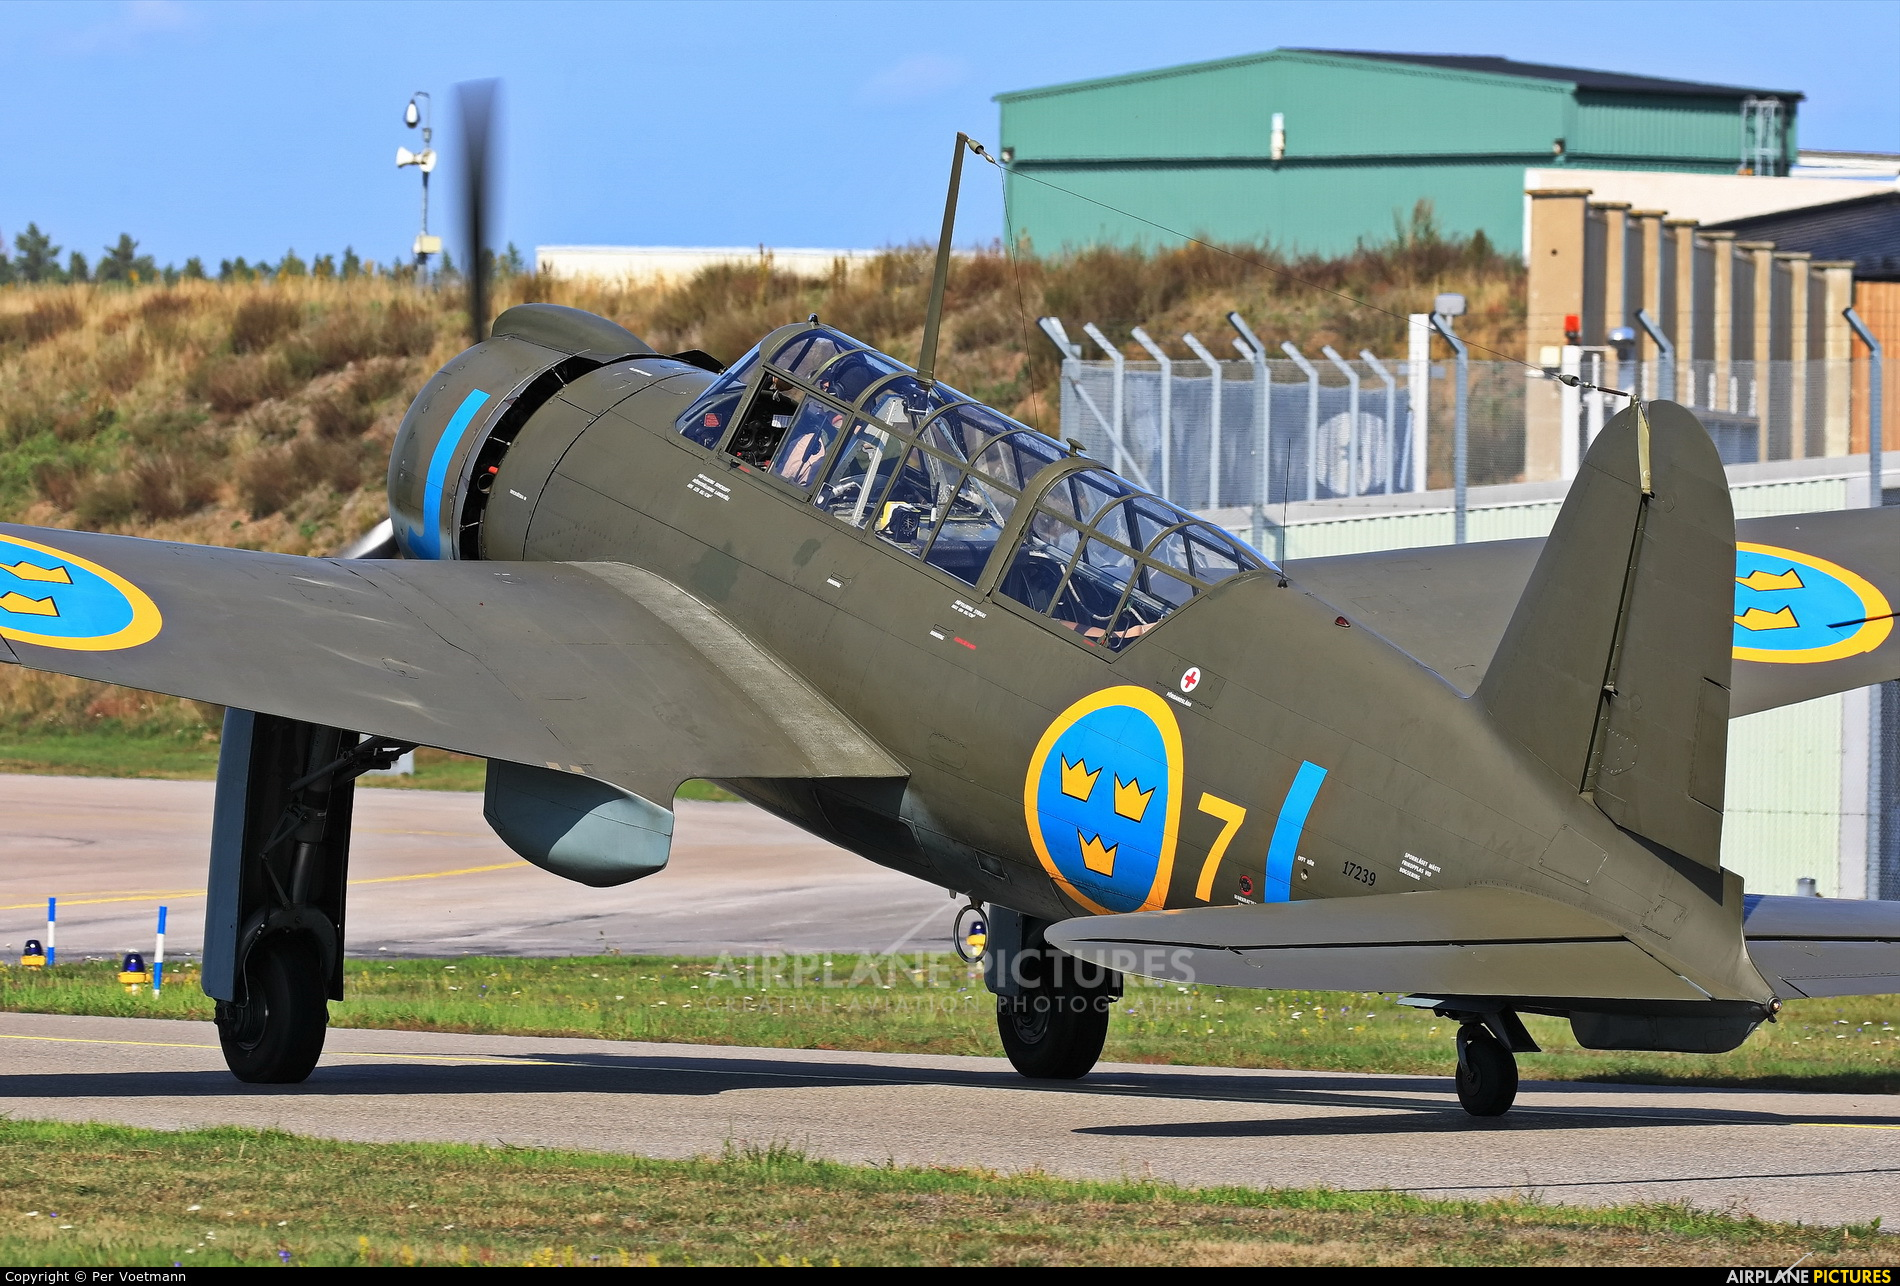 Swedish Air Force Historic Flight SE-BYH aircraft at Ronneby